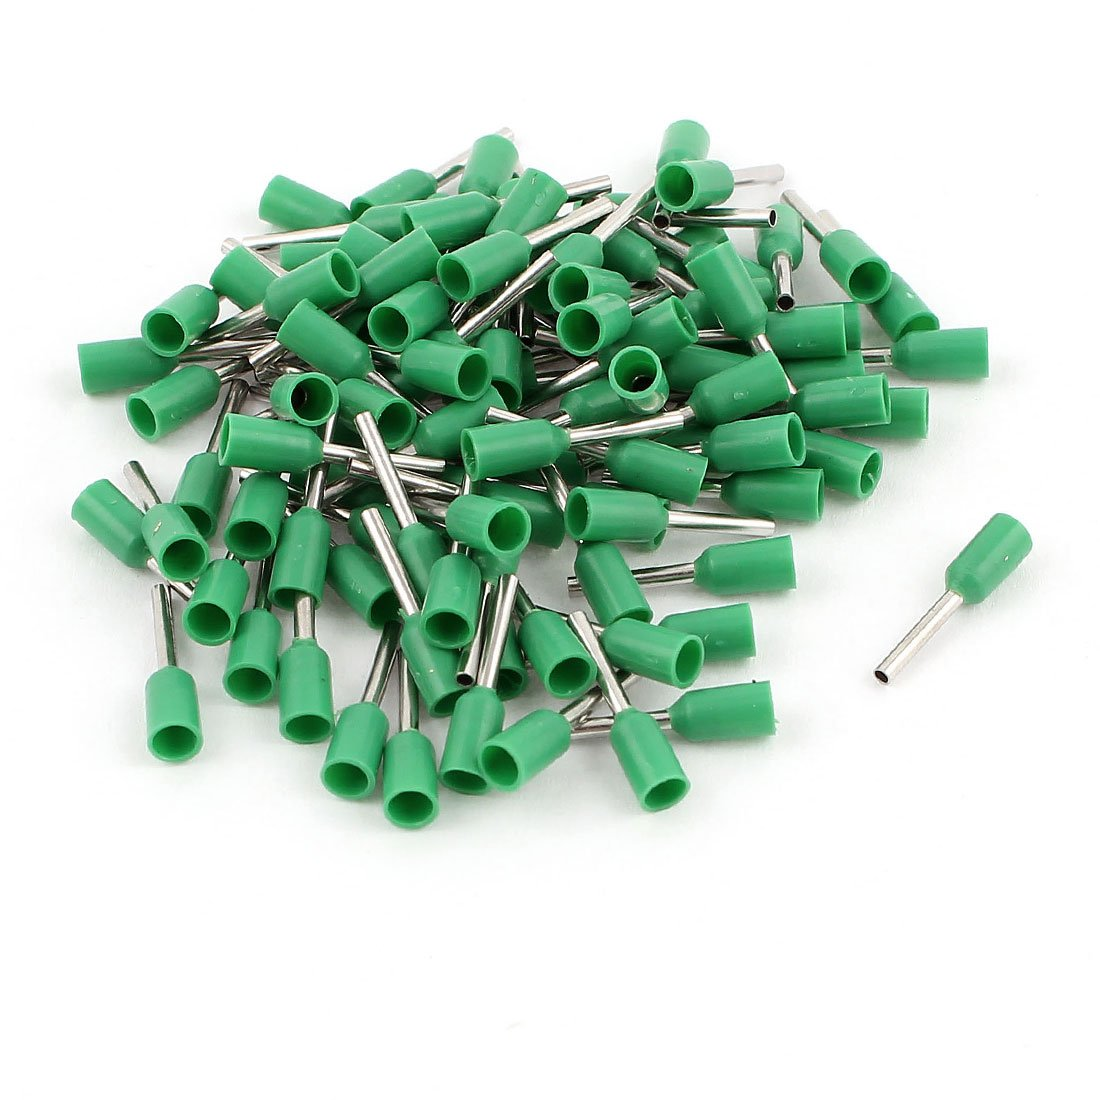 100Pcs 0.5mm2 Crimp Cord End Terminal Bootlace Ferrule Connector Green Sourcingmap a14101600ux0340